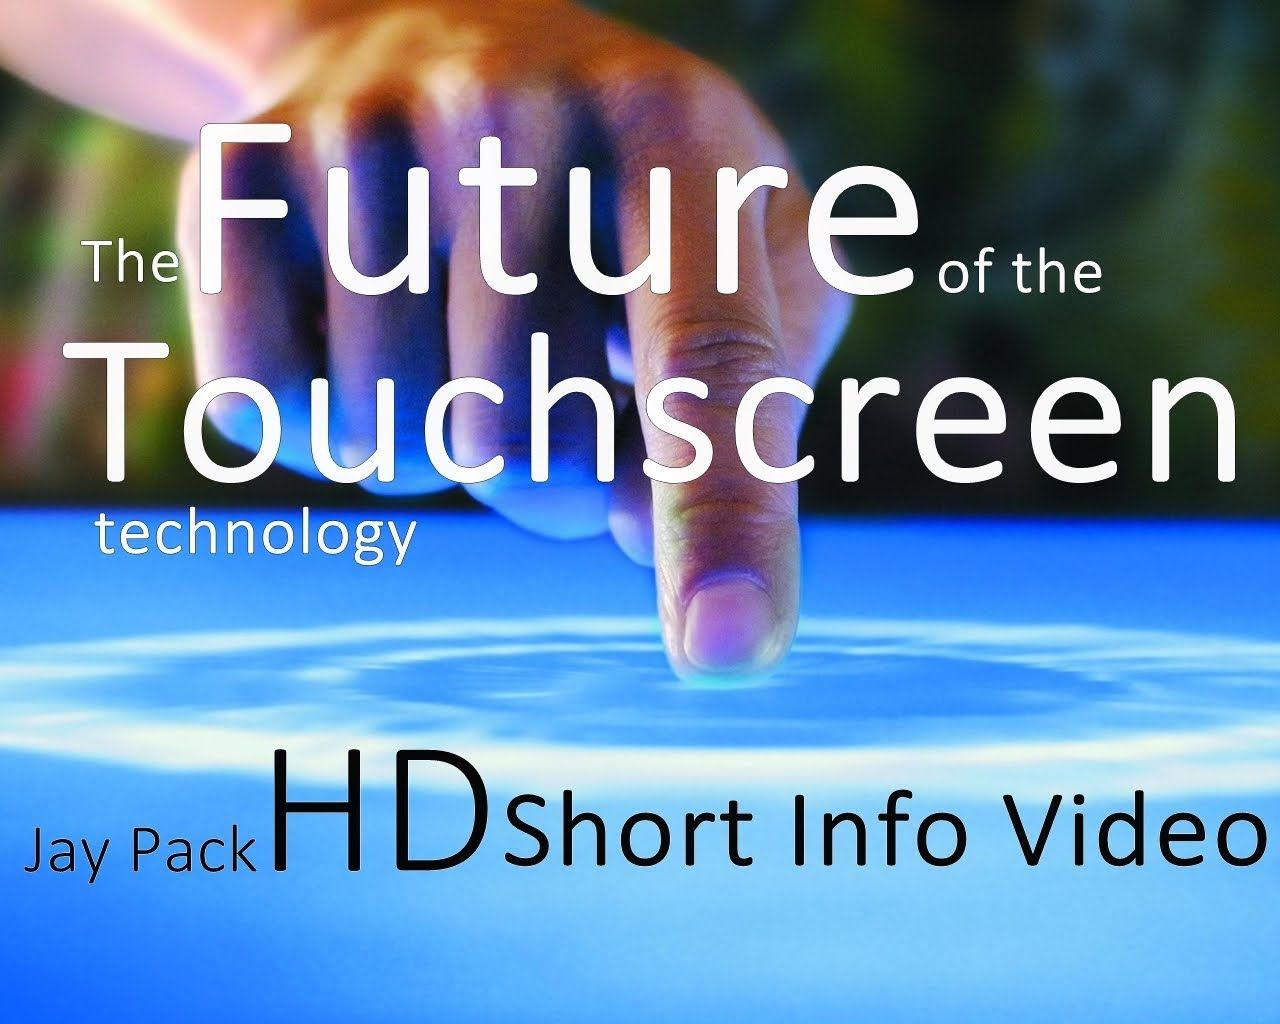 ☆☆☆ The future of the touchscreen-technology